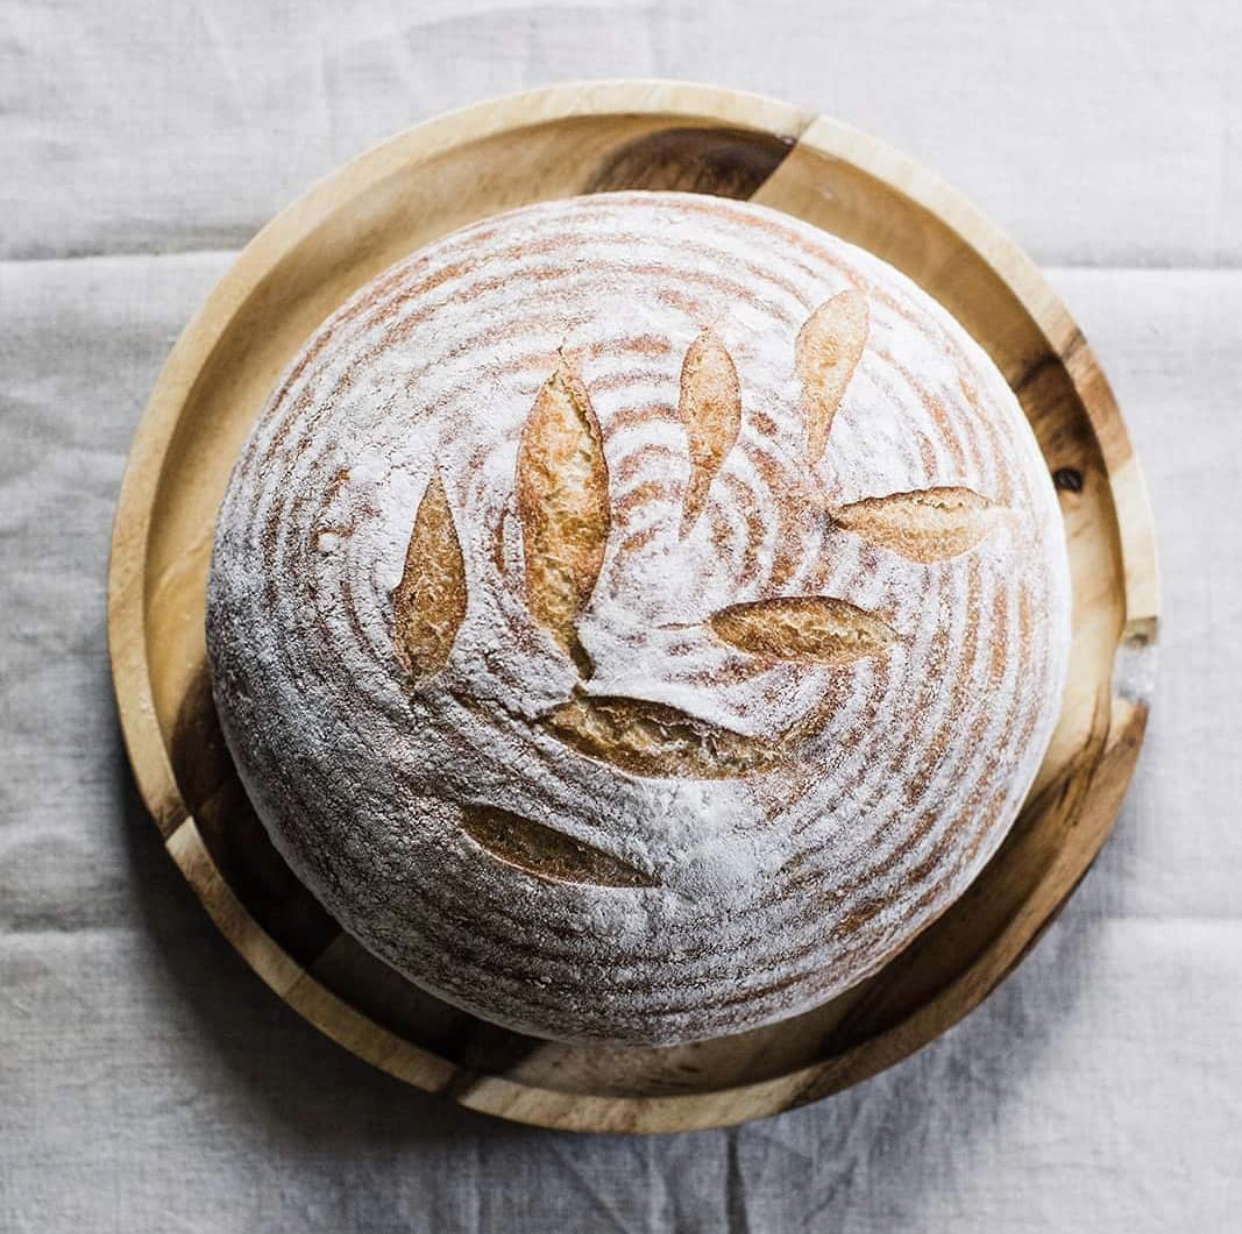 Product Highlight: Sourdough Boule by Bake-n-Jam!